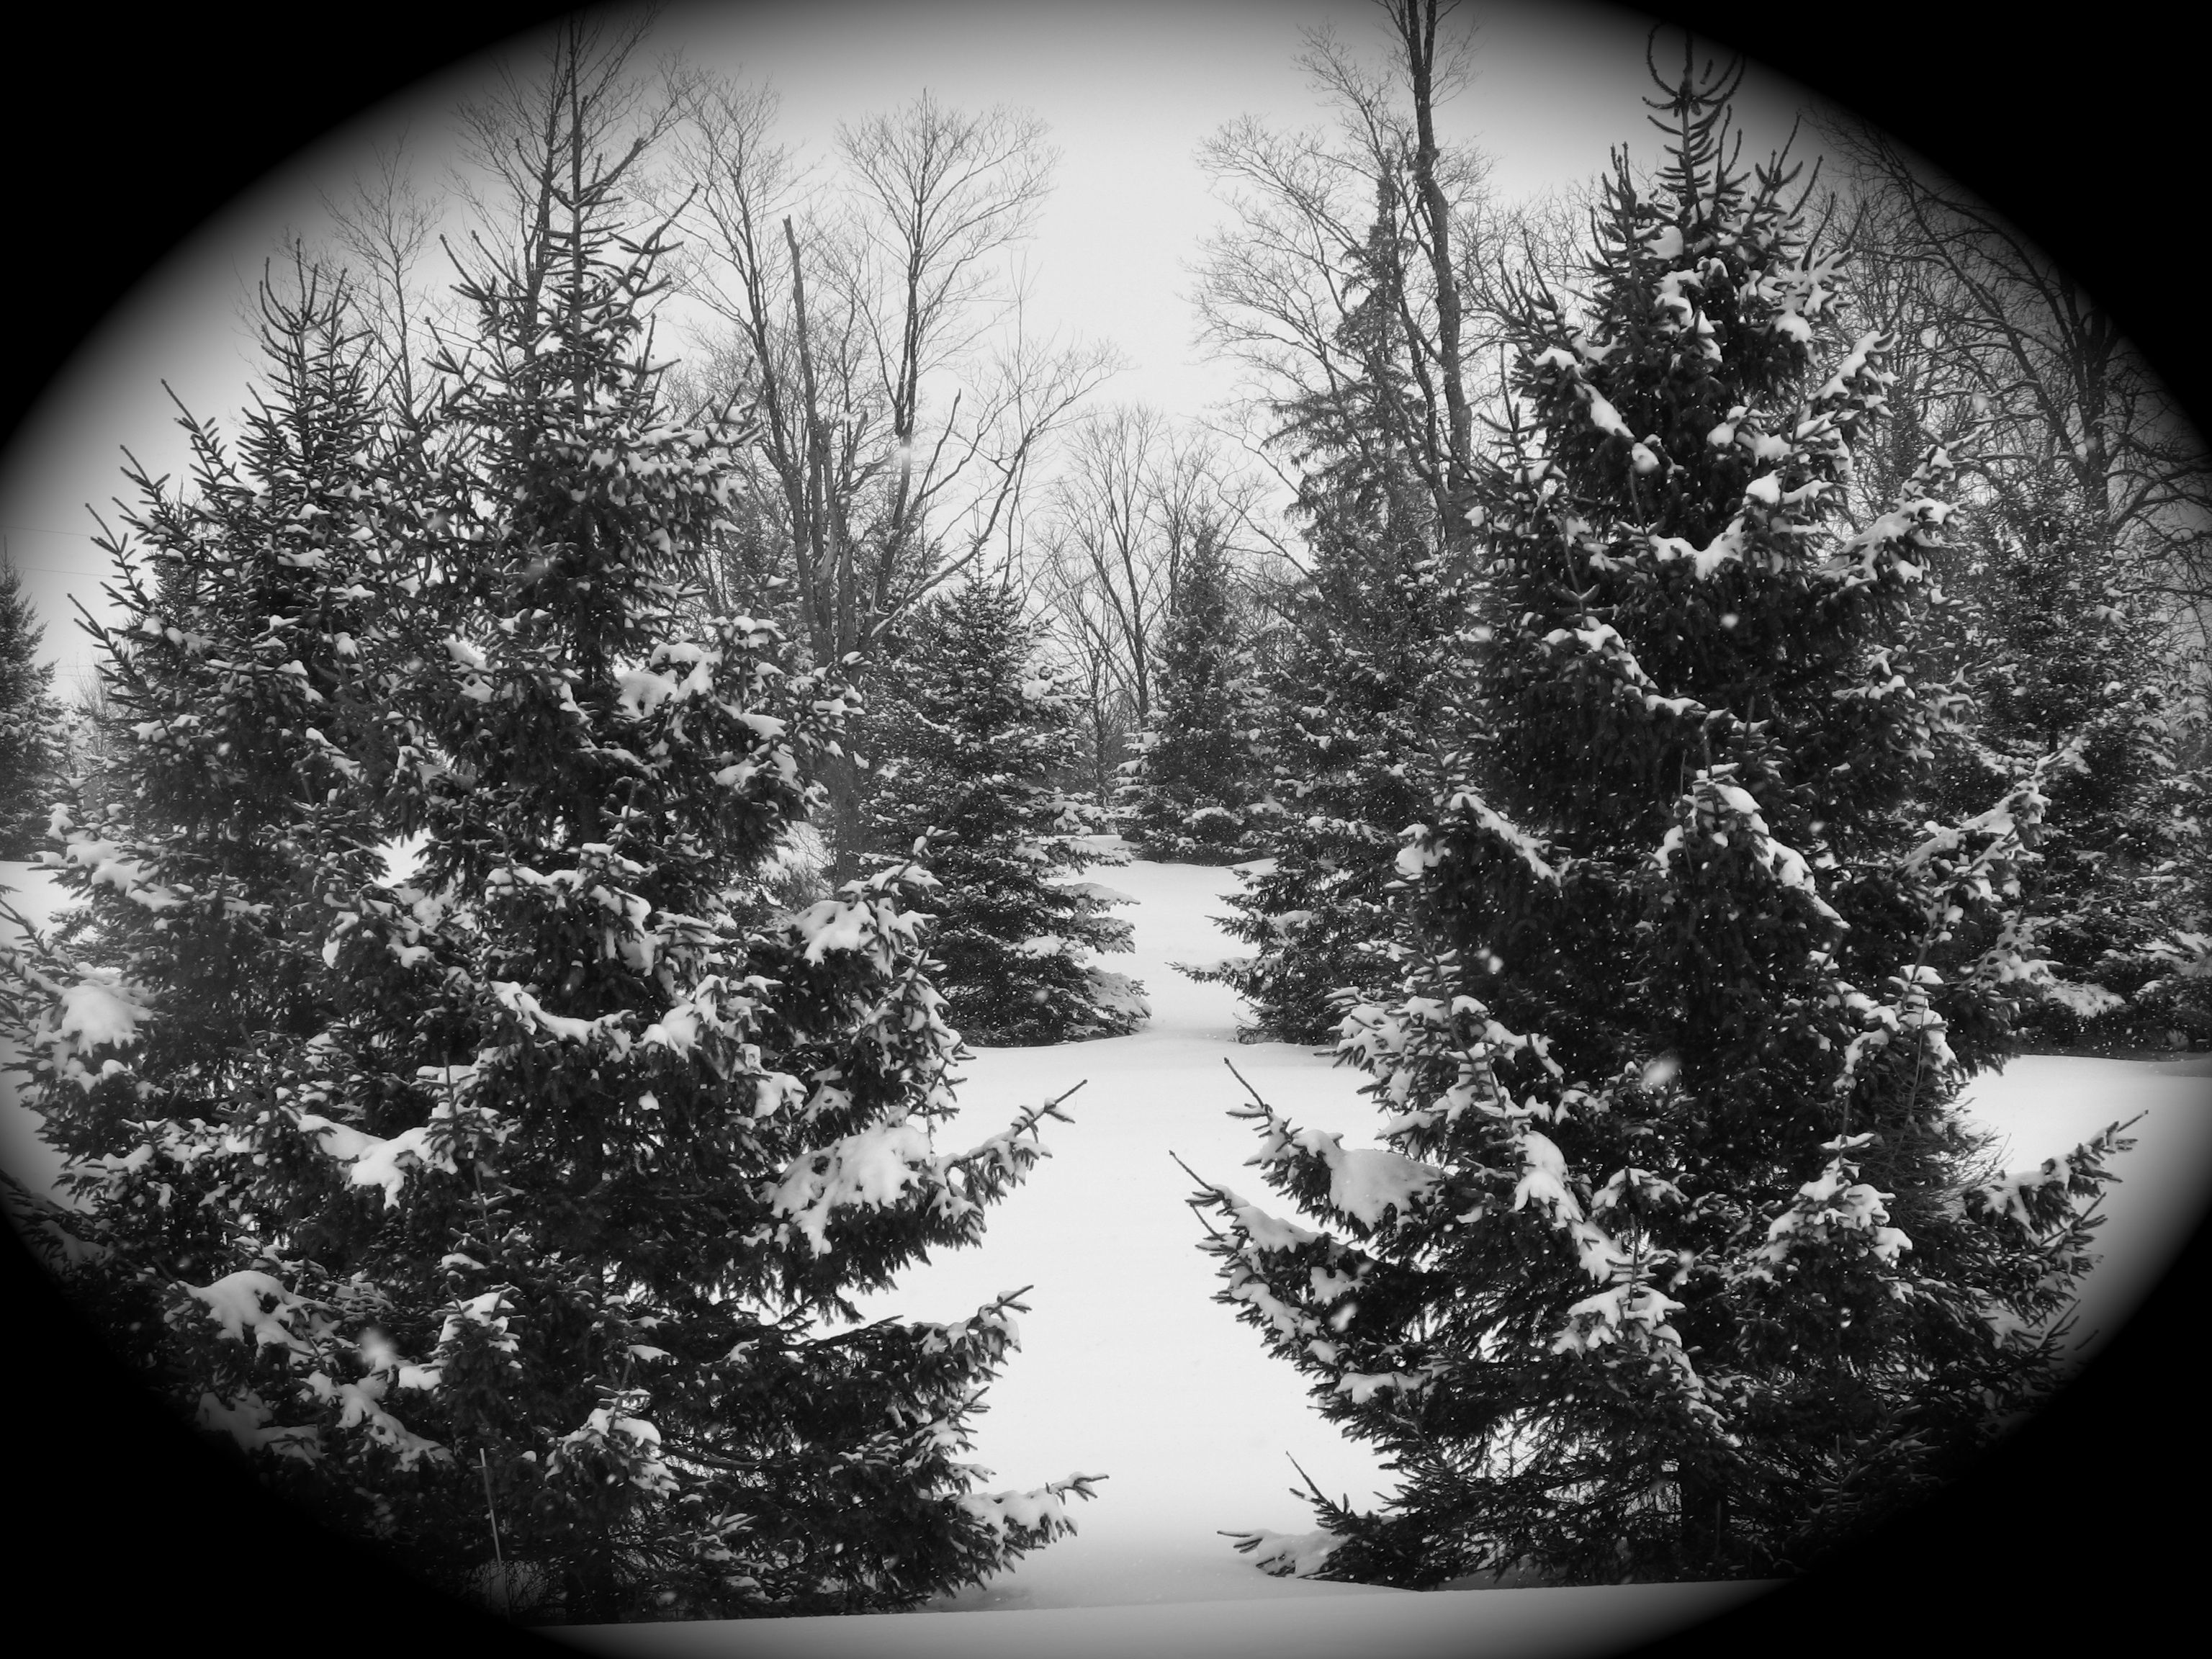 Pine trees in winter.   Pine trees   Pinterest Pictures Trees In Winter Pinterest